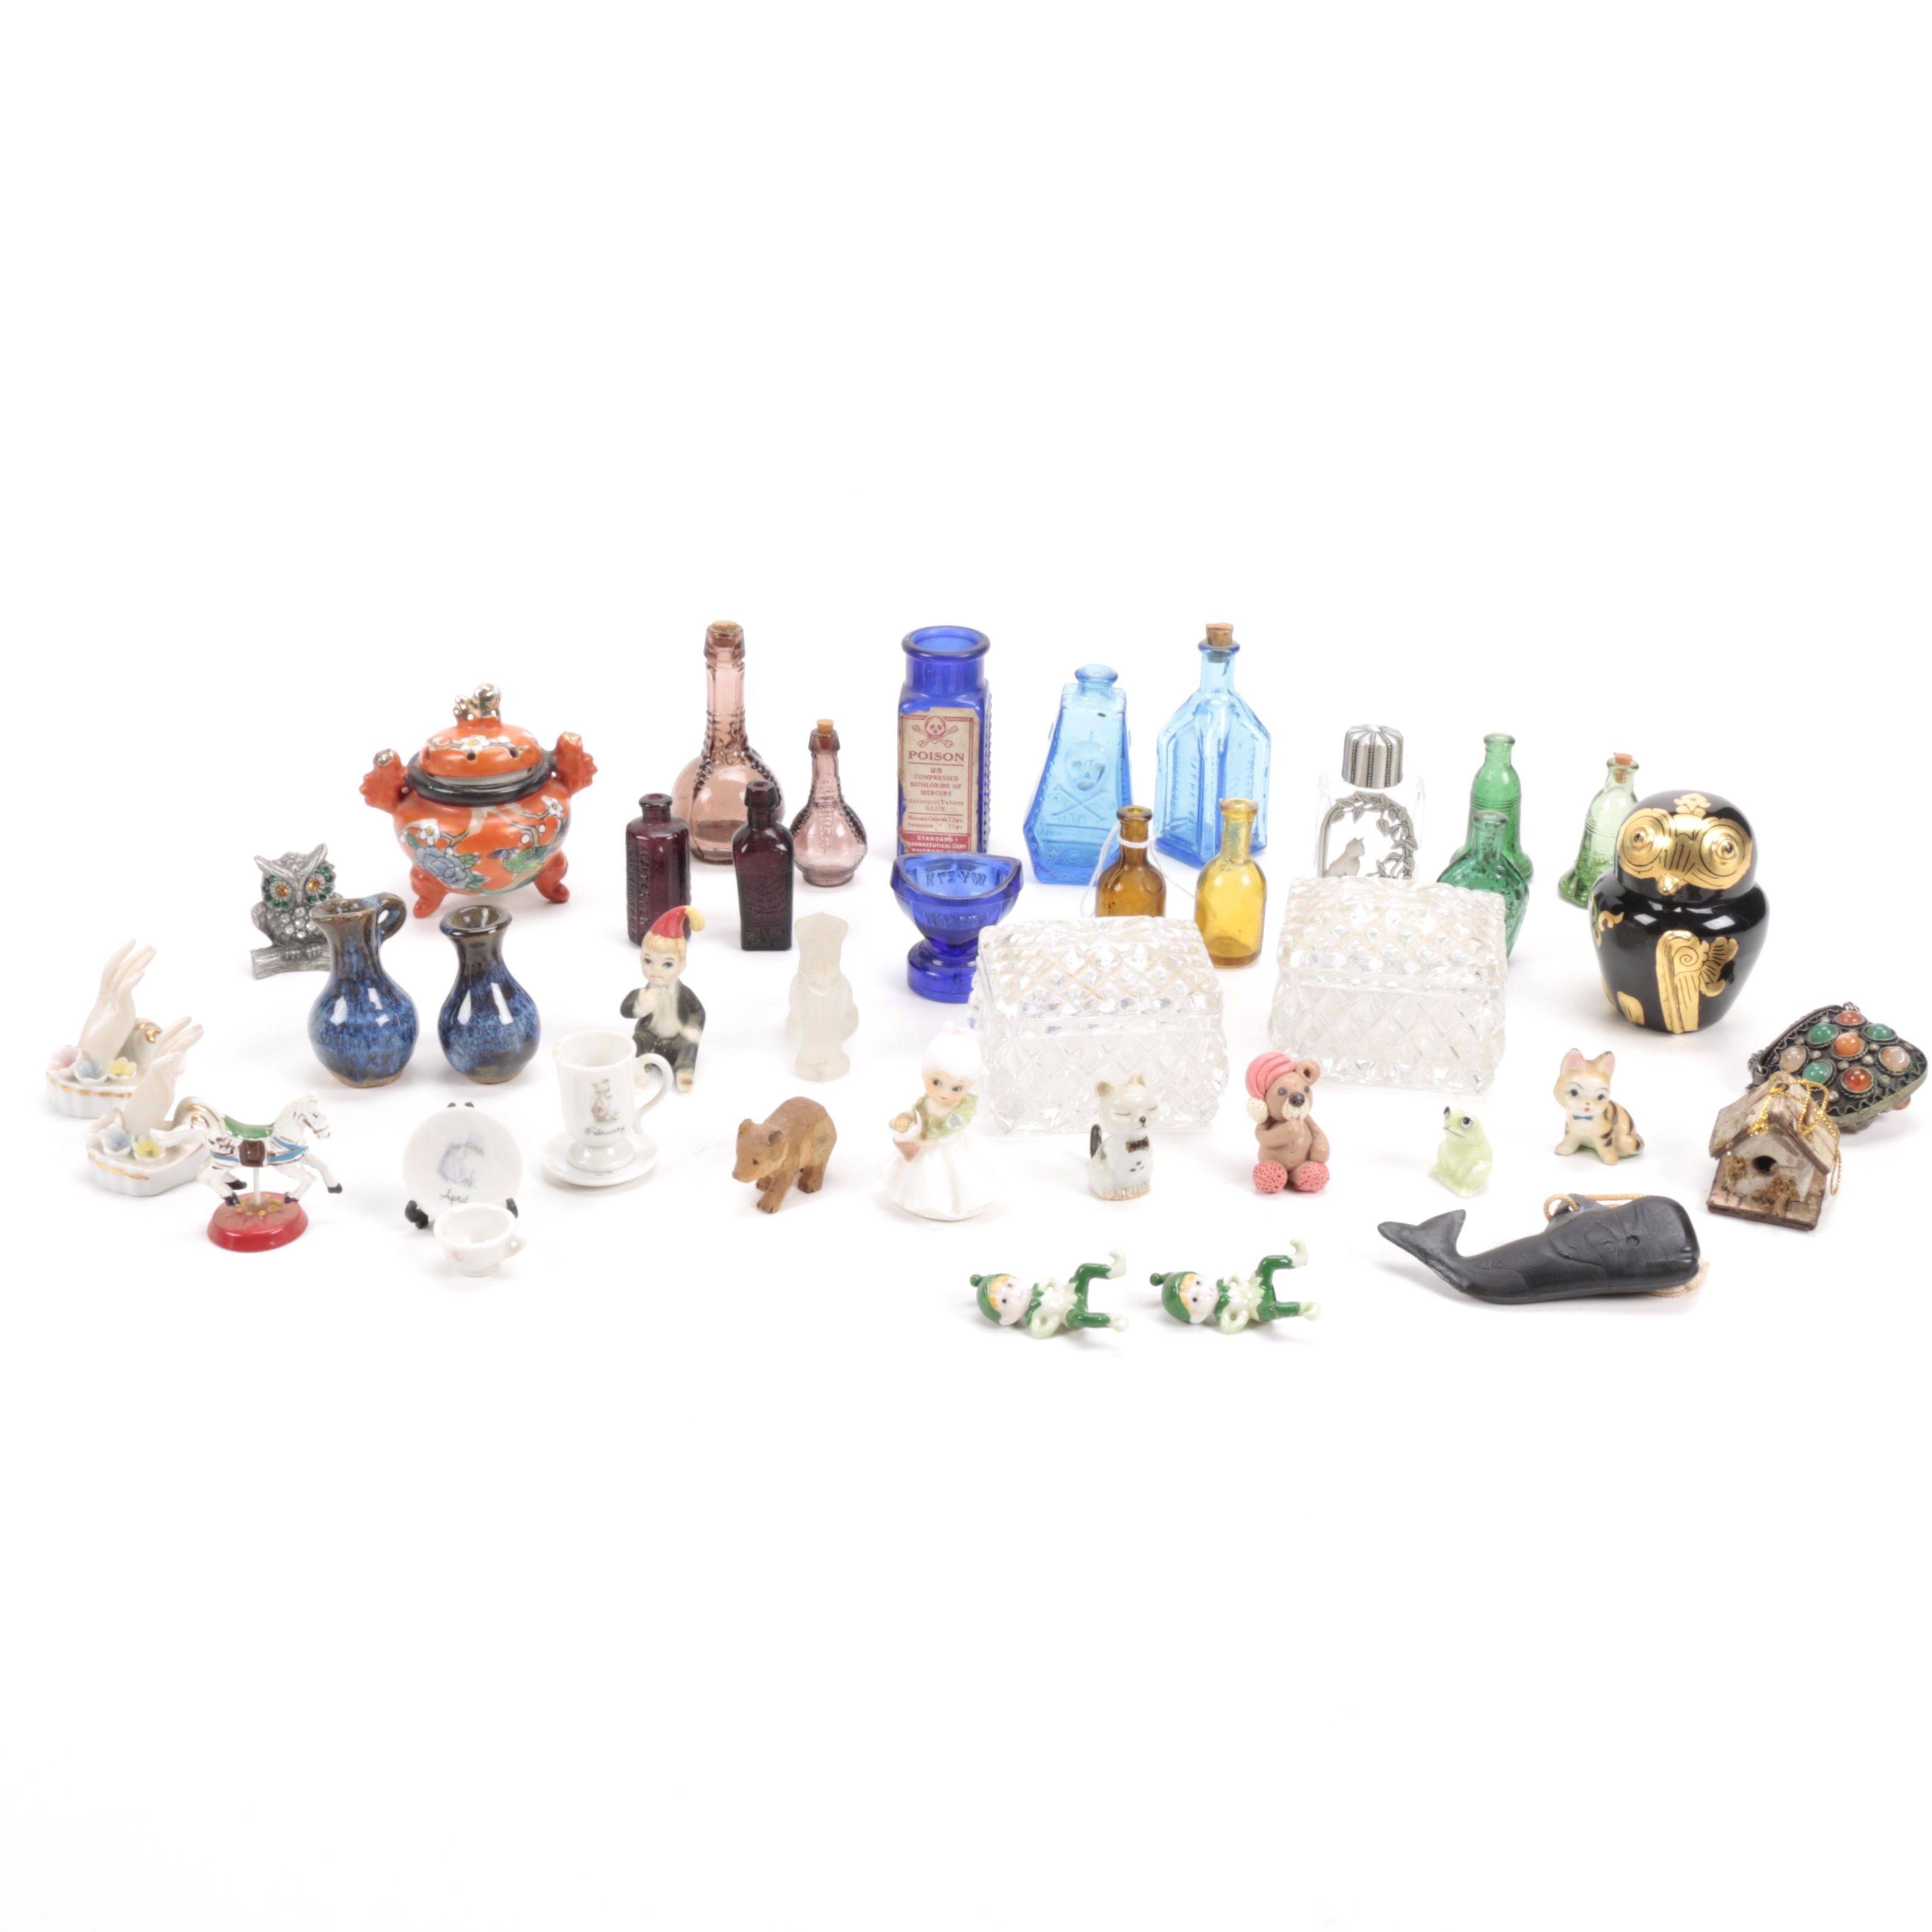 Collection Trinkets and Figurines